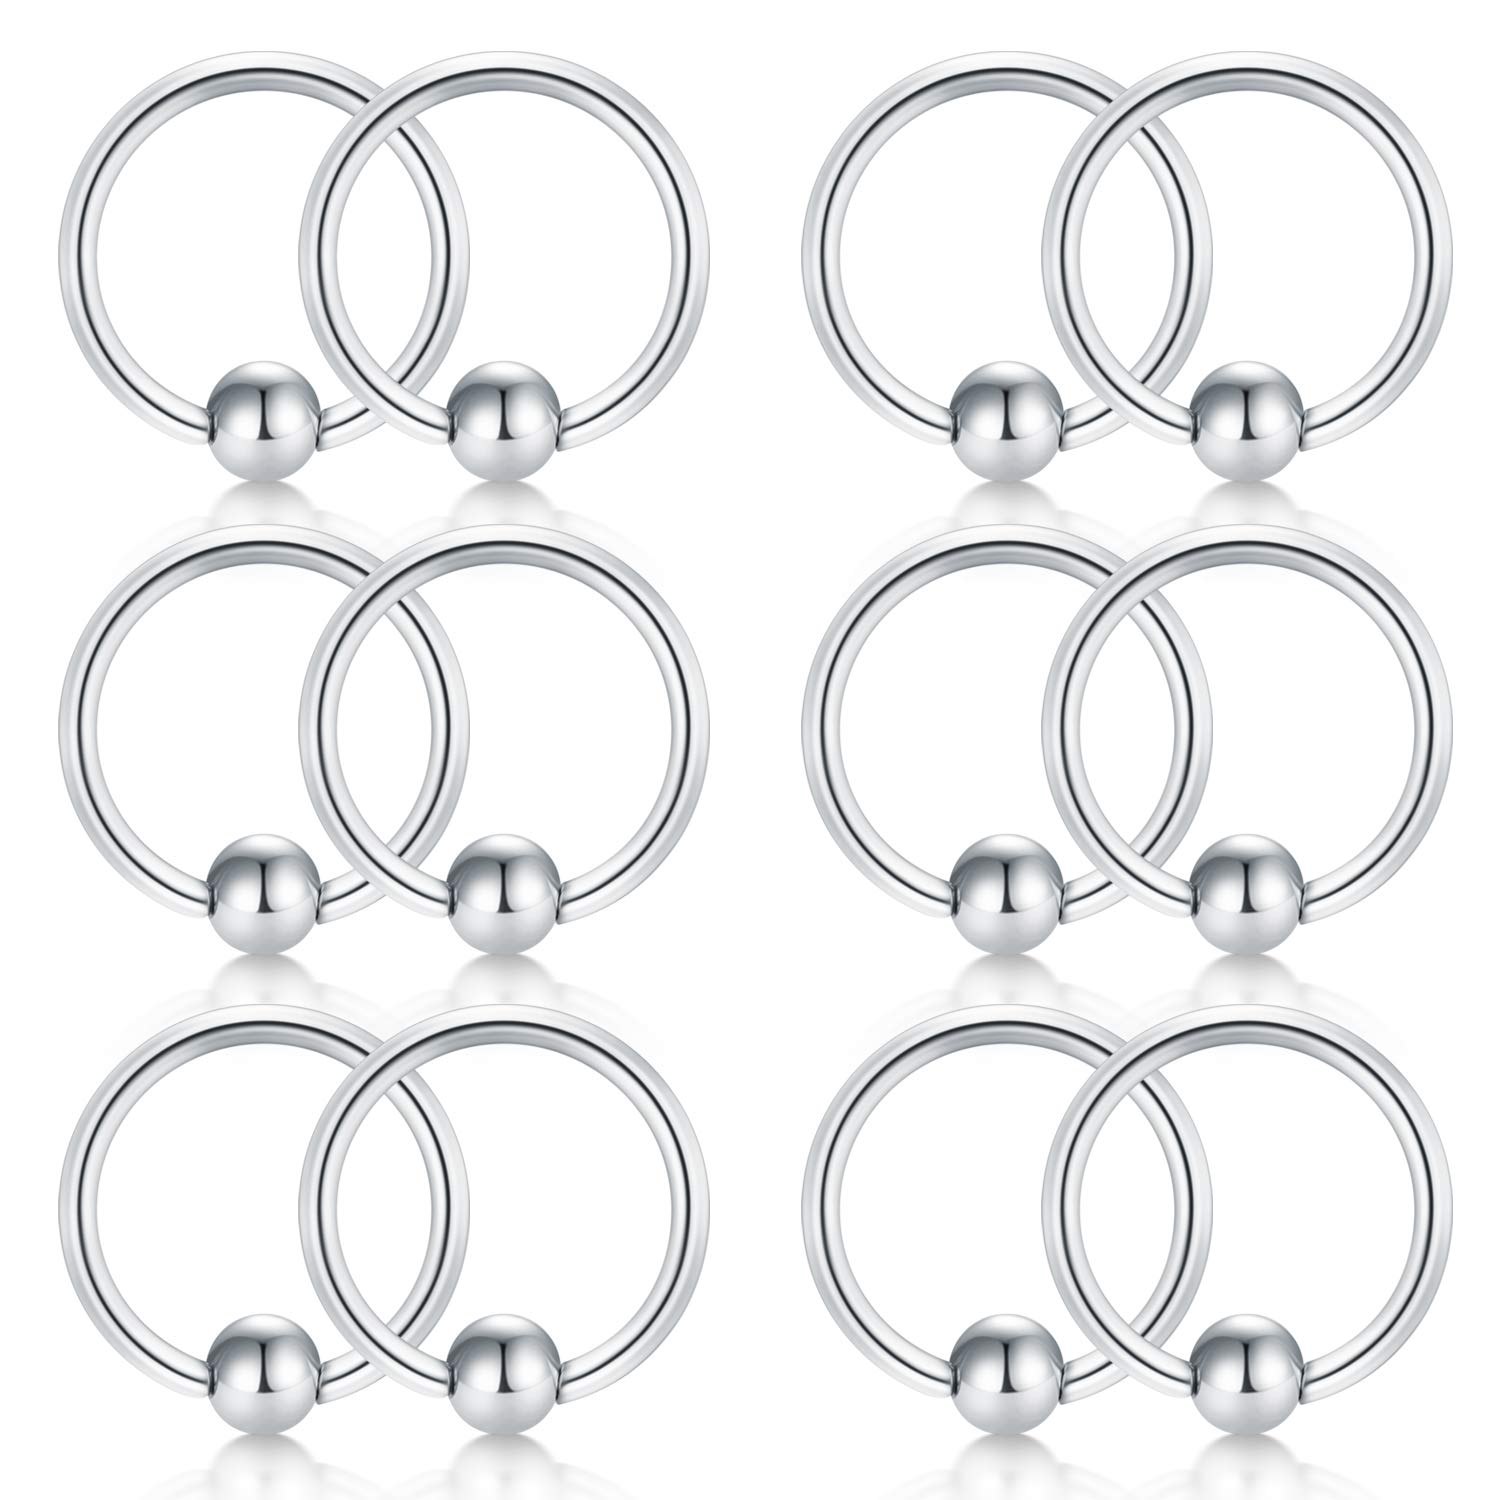 2e89f1caf6eaf D.Bella 16G Surgical Steel Nose Hoop Septum Earring Eyebrow Tongue ...